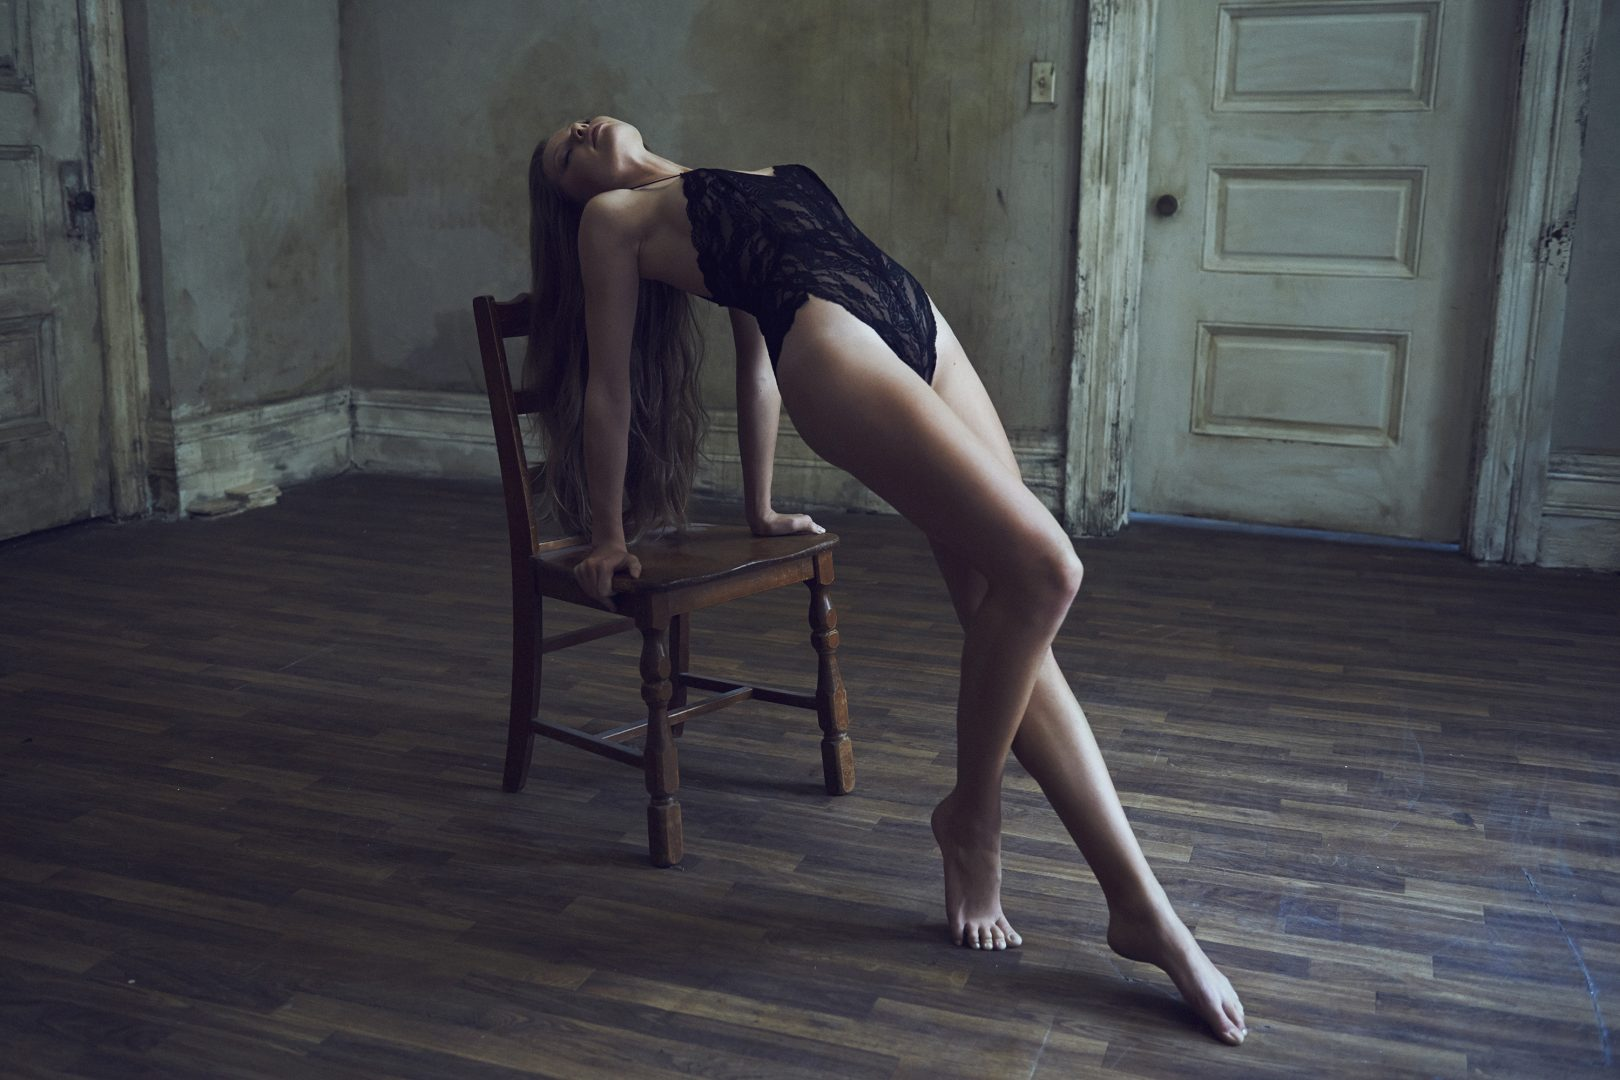 Girl in lingerie leaning on chair by Stefan Rappo